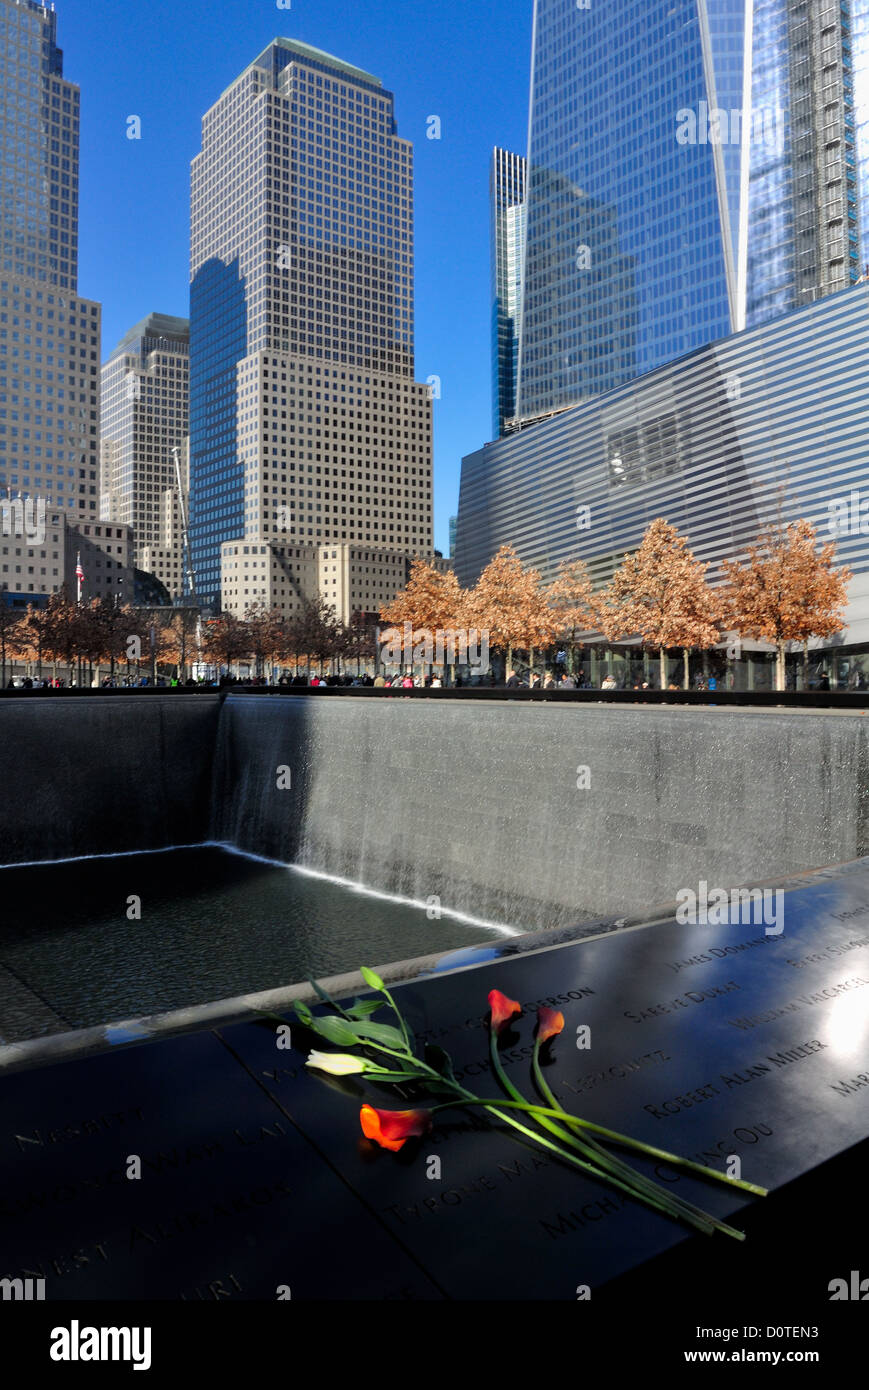 South reflecting pool and surrounding buildings, 9/11 Memorial, New York City. - Stock Image